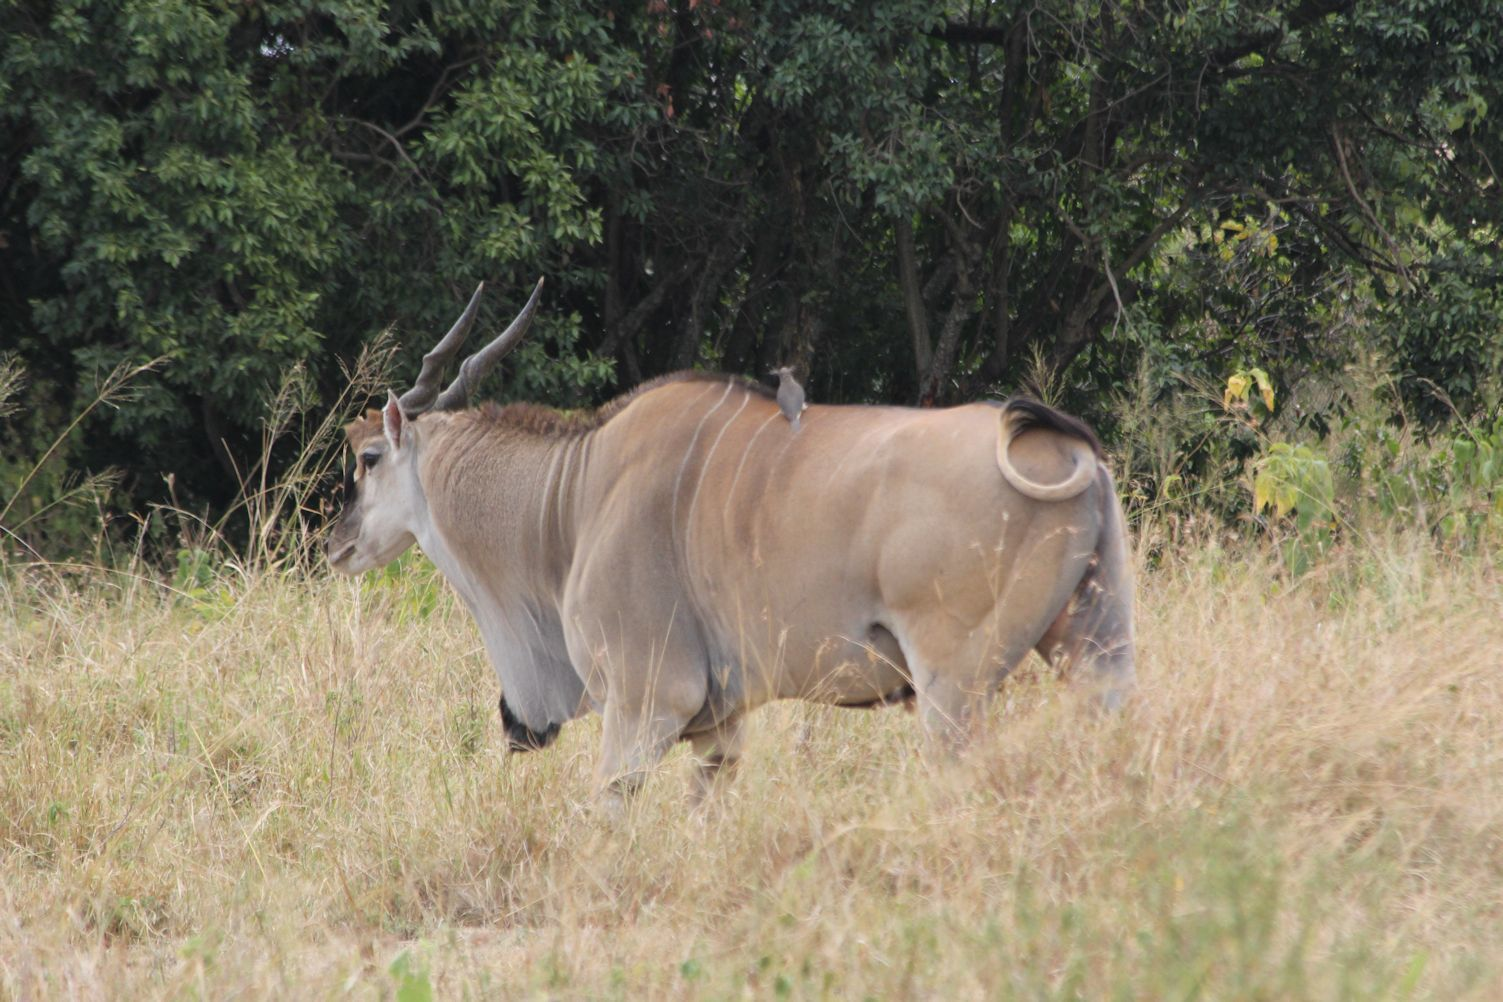 This massive antelope is called Eland